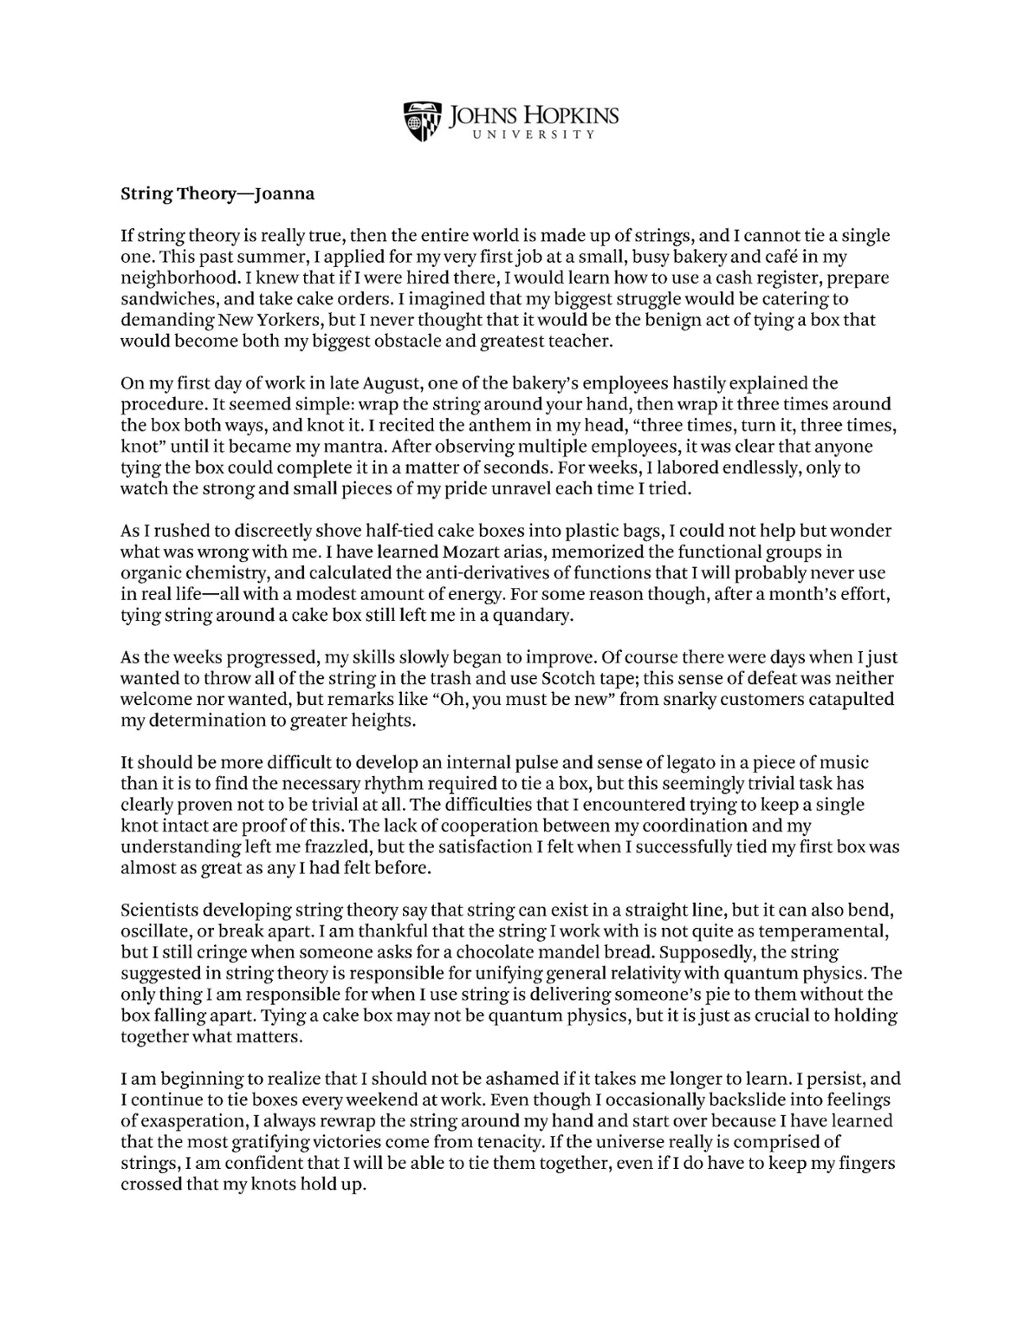 002 Johns Hopkins College Essays Essay Example Remarkable Prompt Full